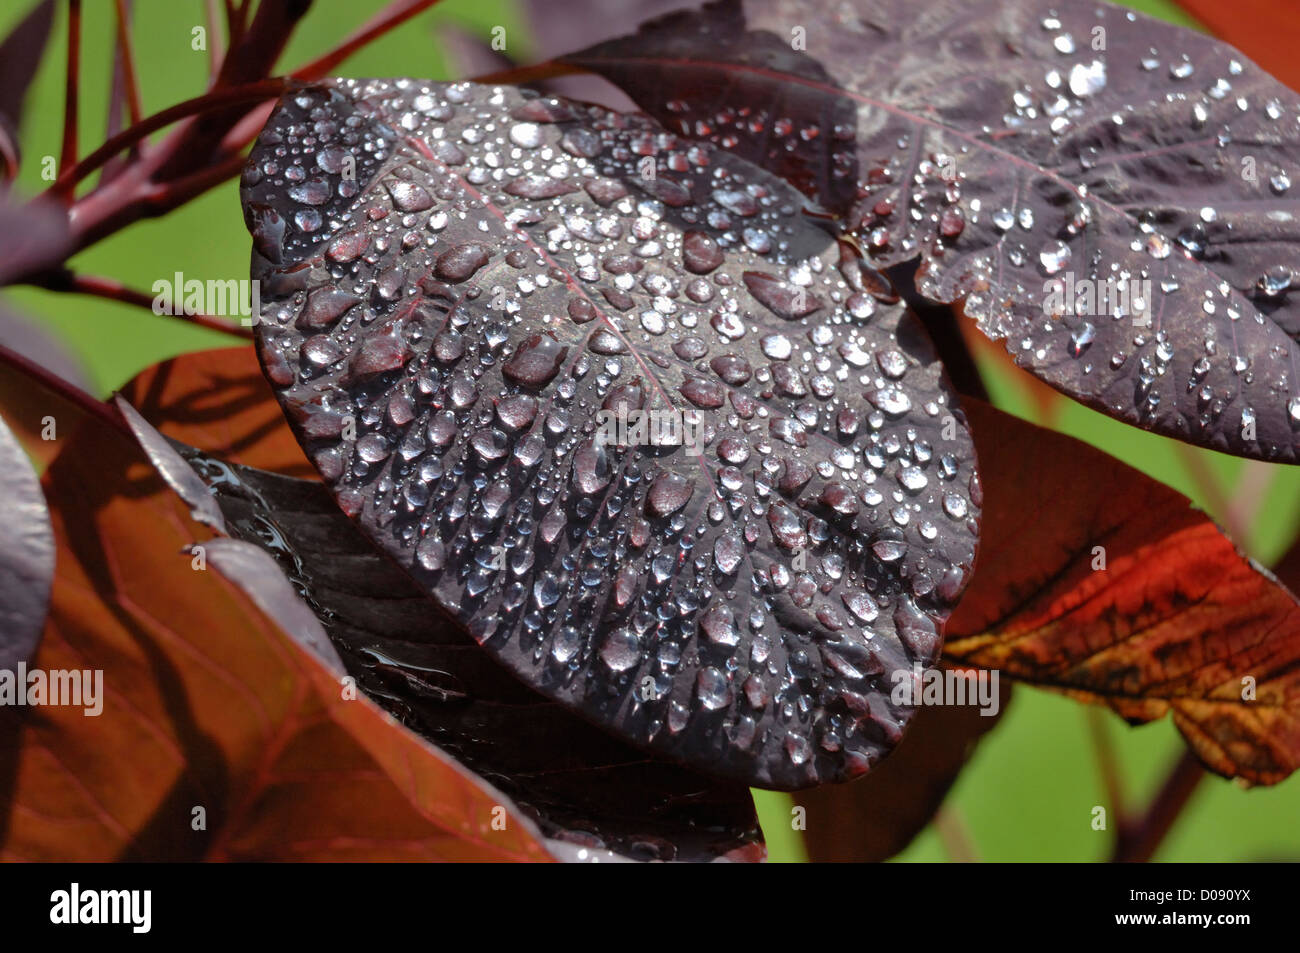 Smoke tree (Cotinus coggygria) leaves with rain drops - Stock Image